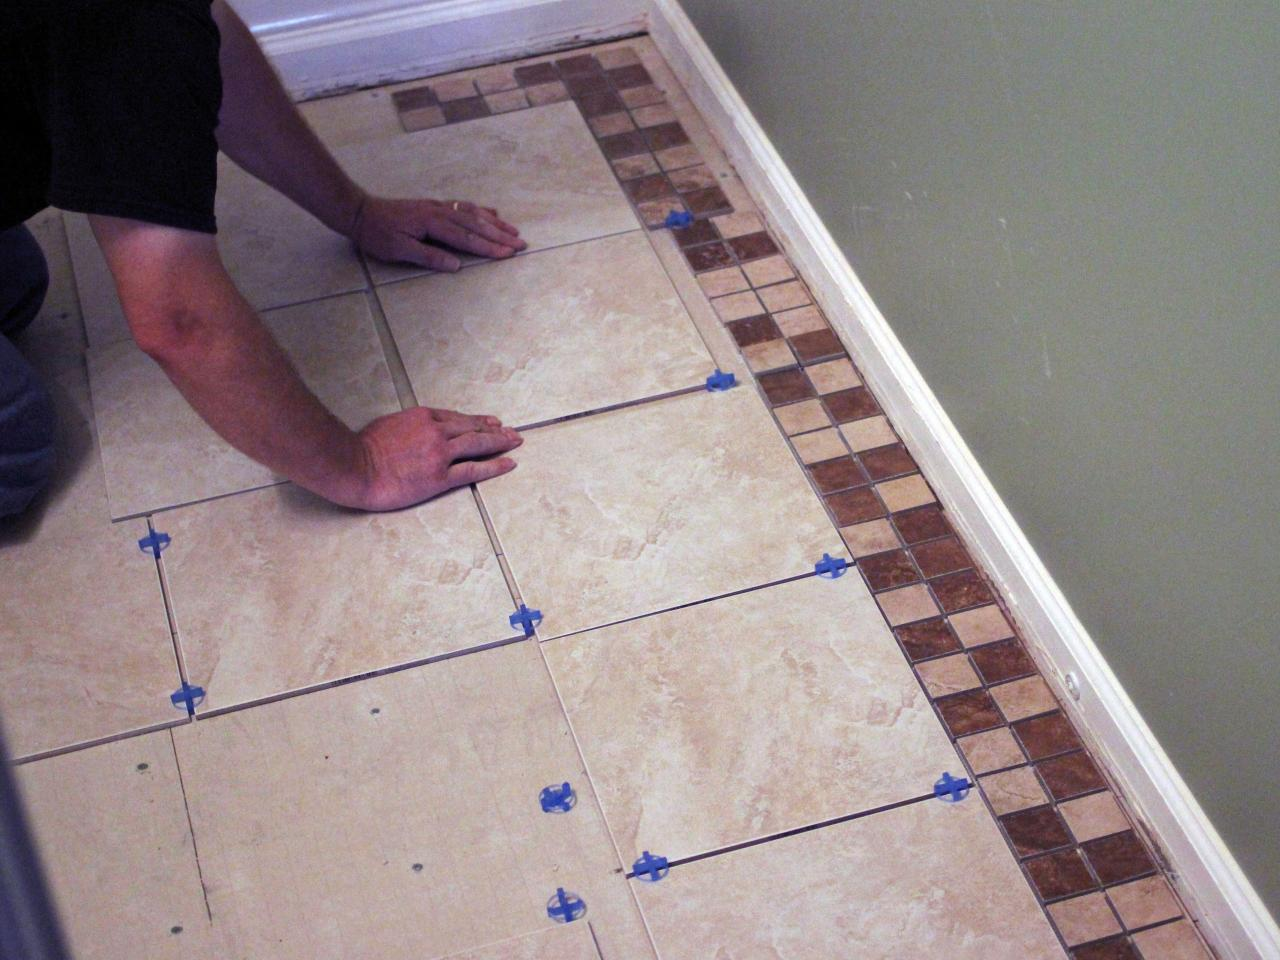 How To Install Bathroom Floor Tile Howtos DIY - How to repair bathroom floor tile